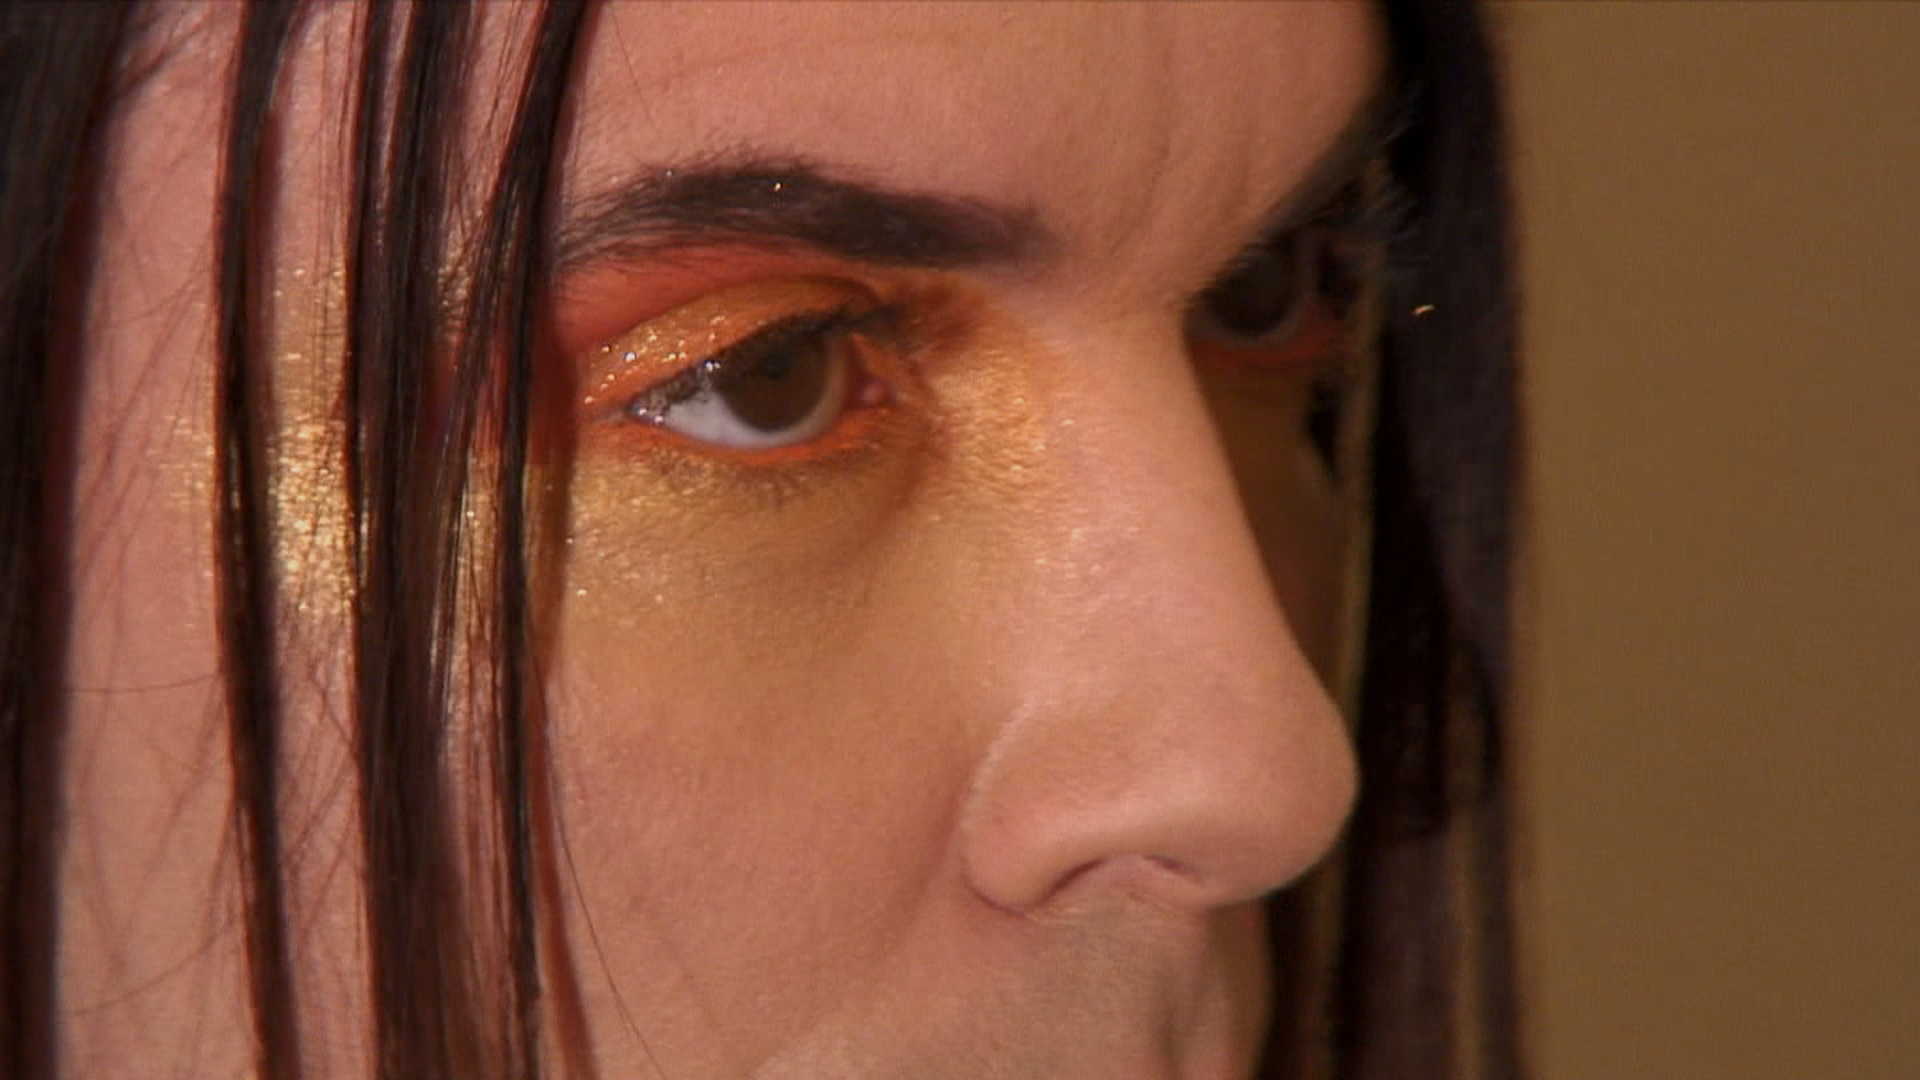 Rohan Quine, 'The Imagination Thief' - film 'JAYMI 115', still 28